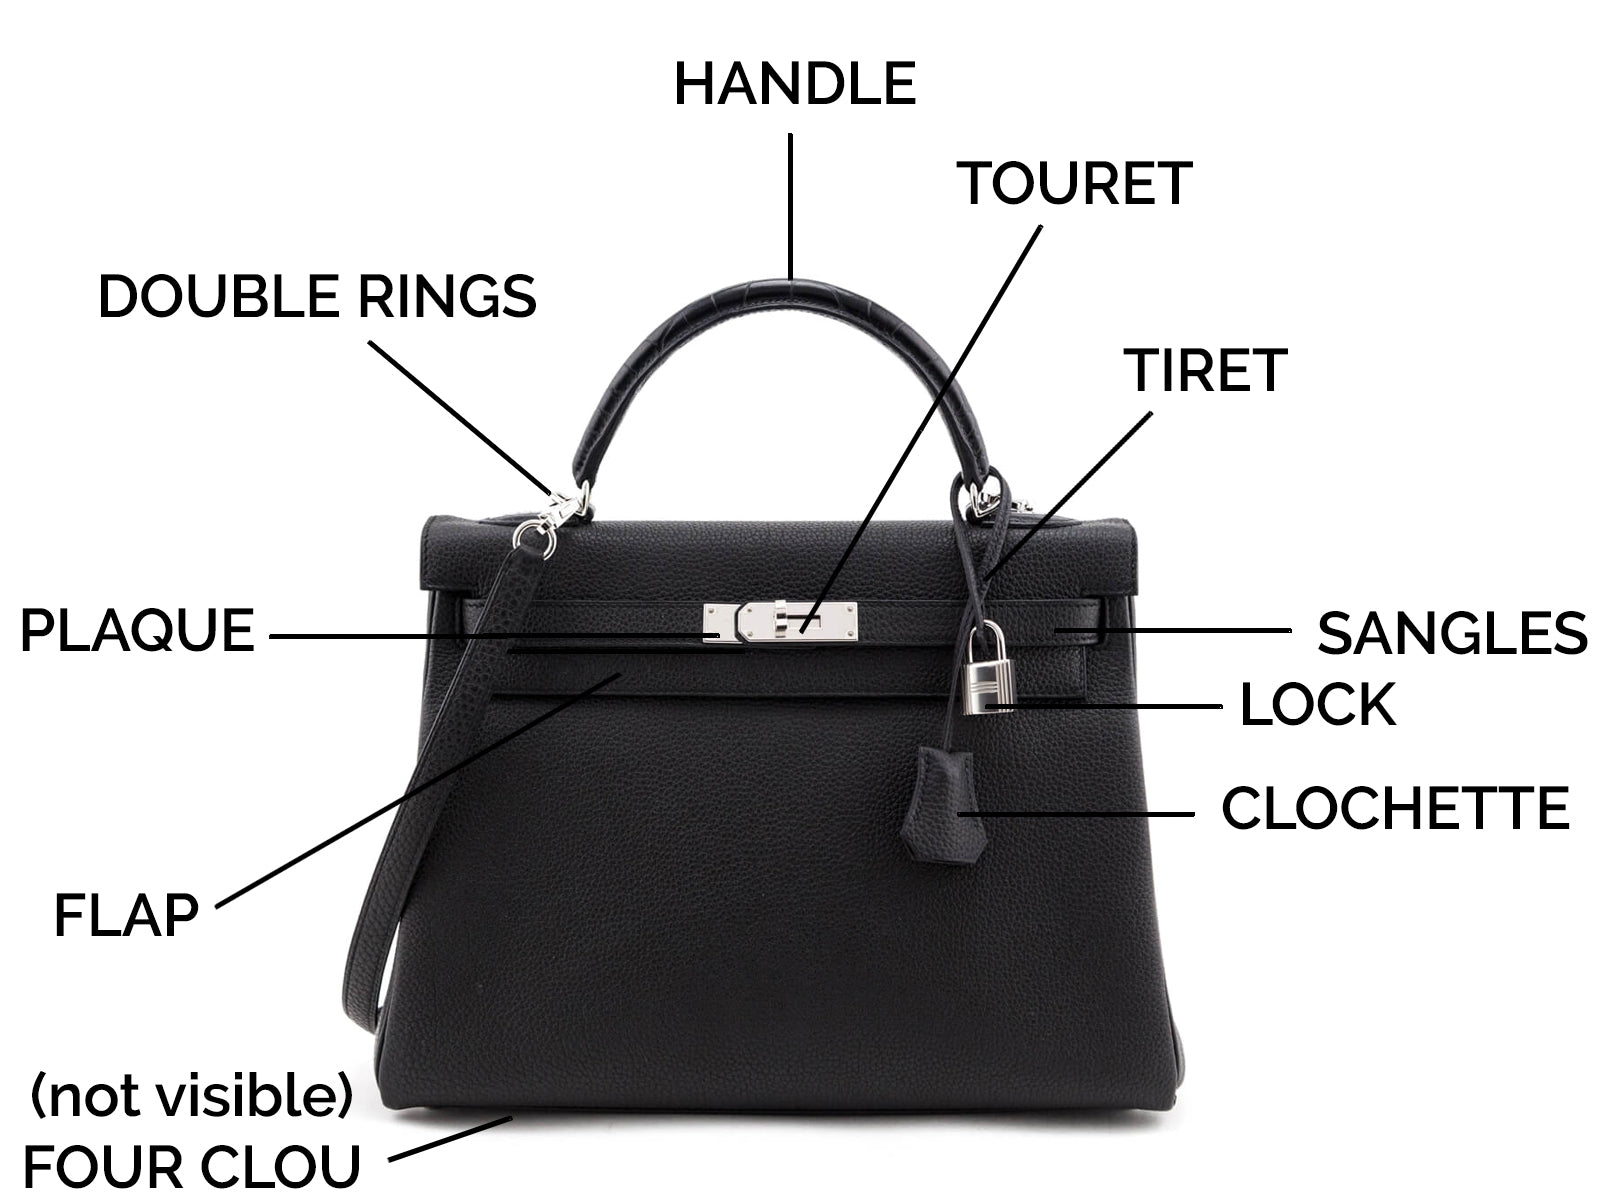 Discover everything there is to know about the Hermes Kelly Bag